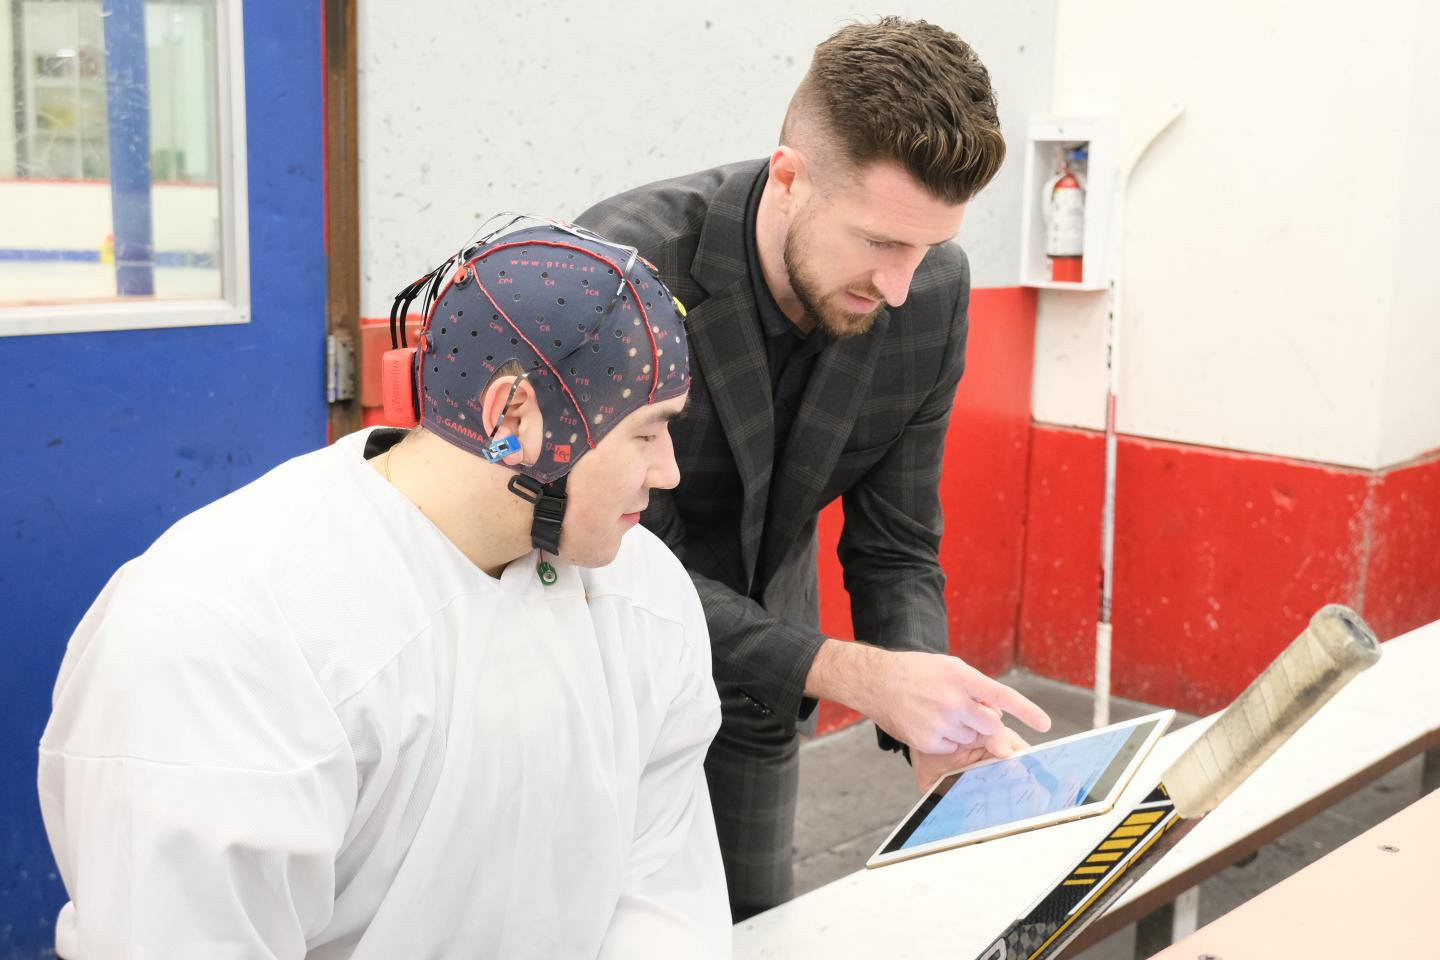 Hockey player gets his brain vital signs checked